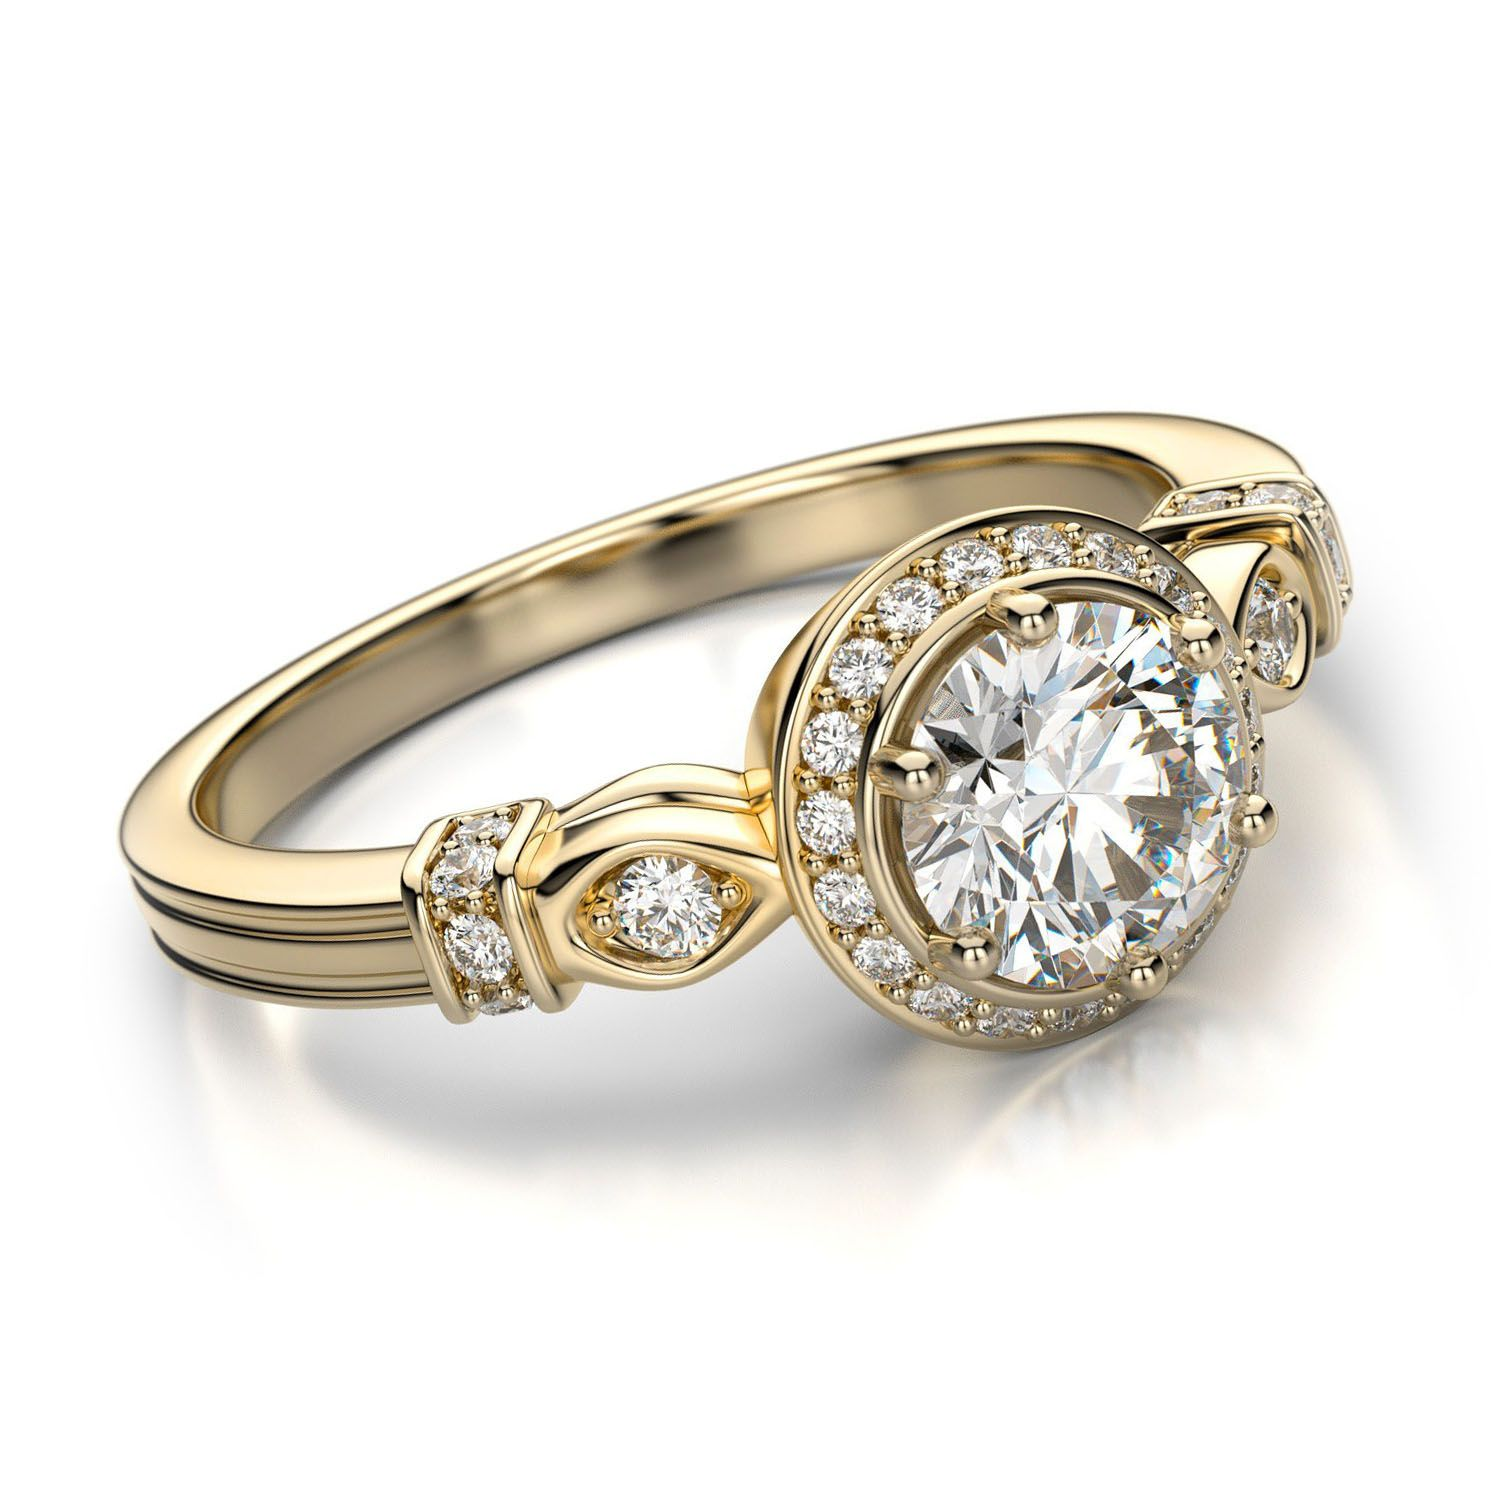 Vintage Diamond Engagement Rings for Women Beautiful Rings Like